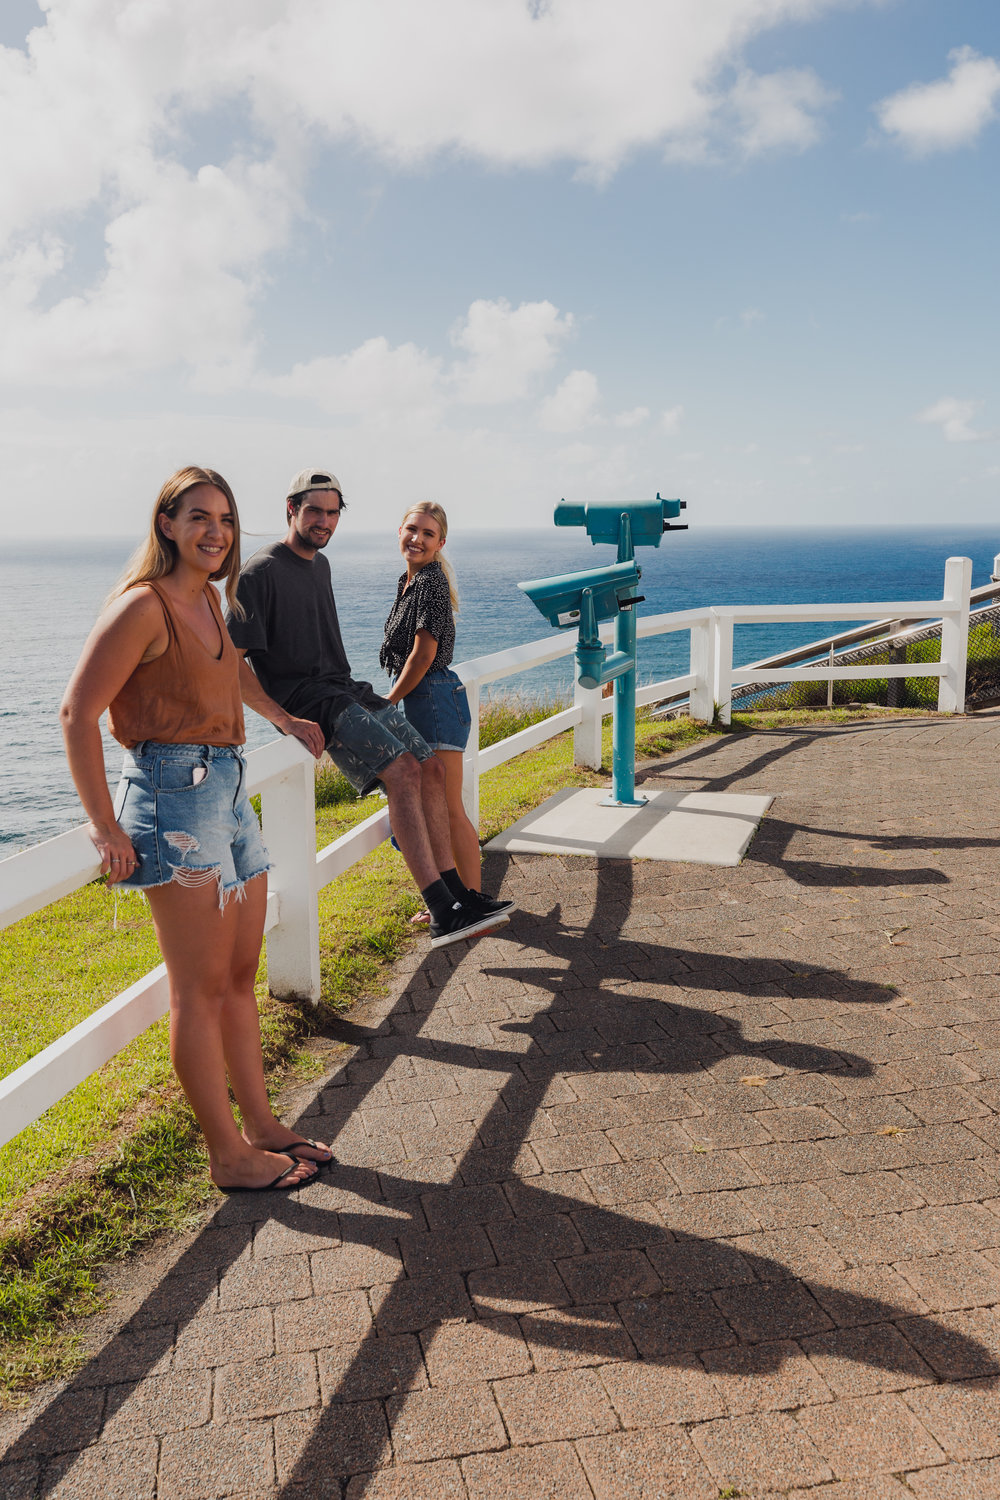 Byron Bay Lighthouse with the Crew